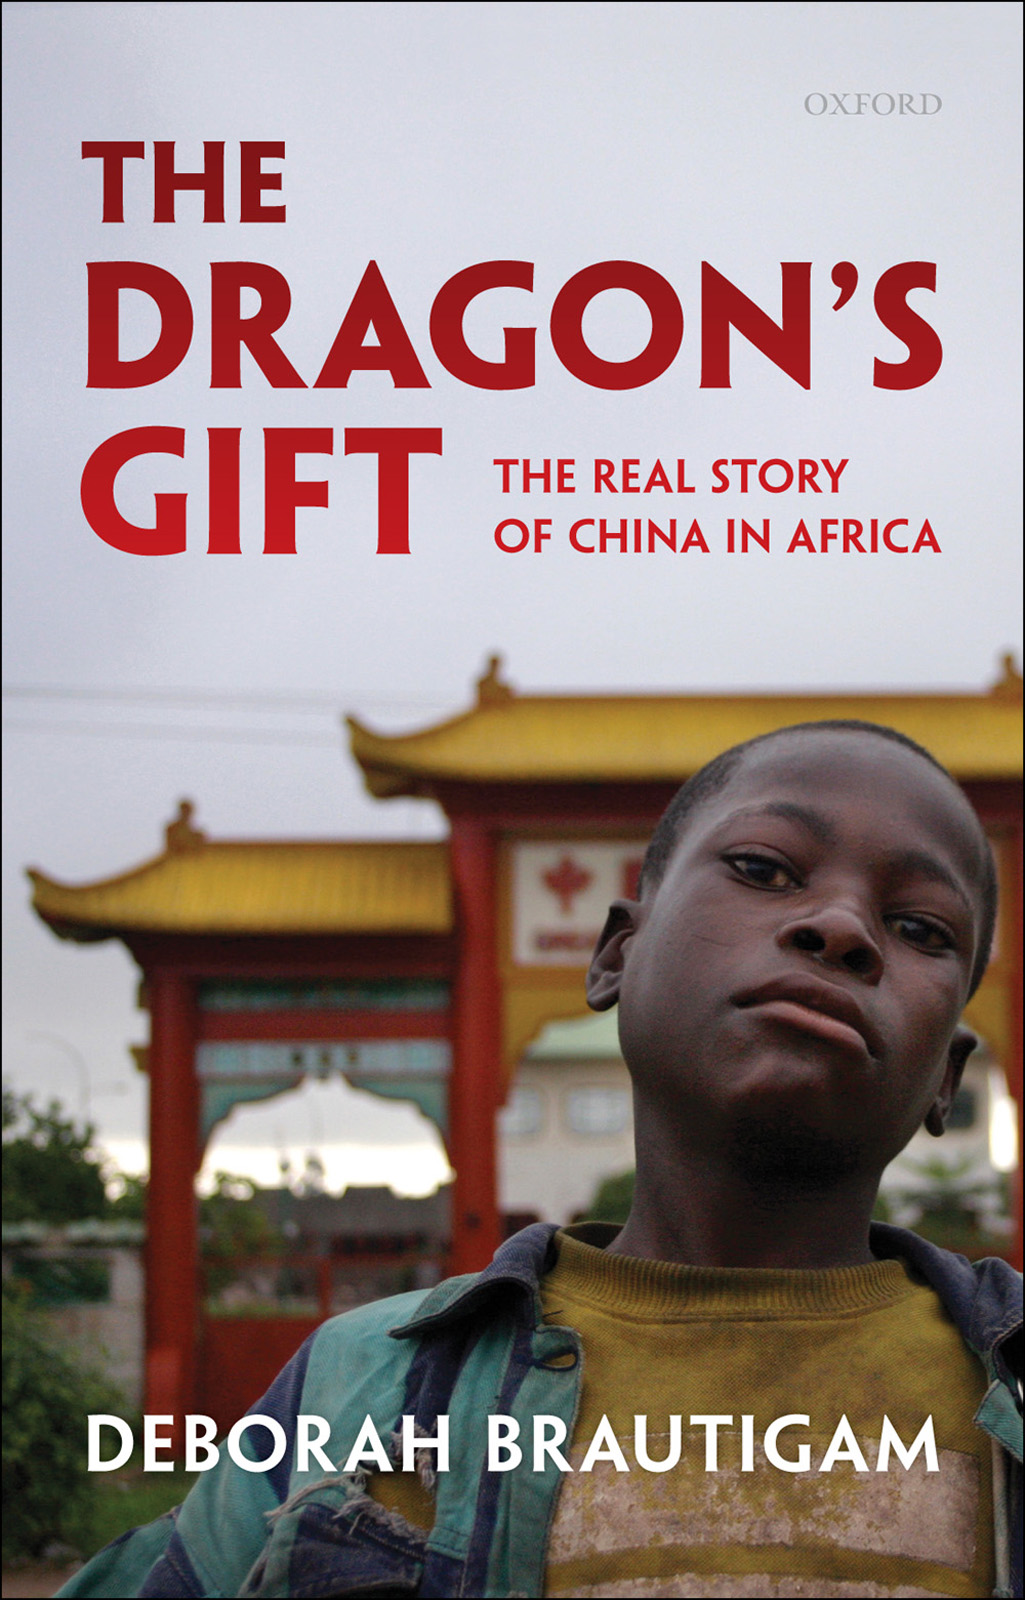 The Dragon's Gift:The Real Story of China in Africa